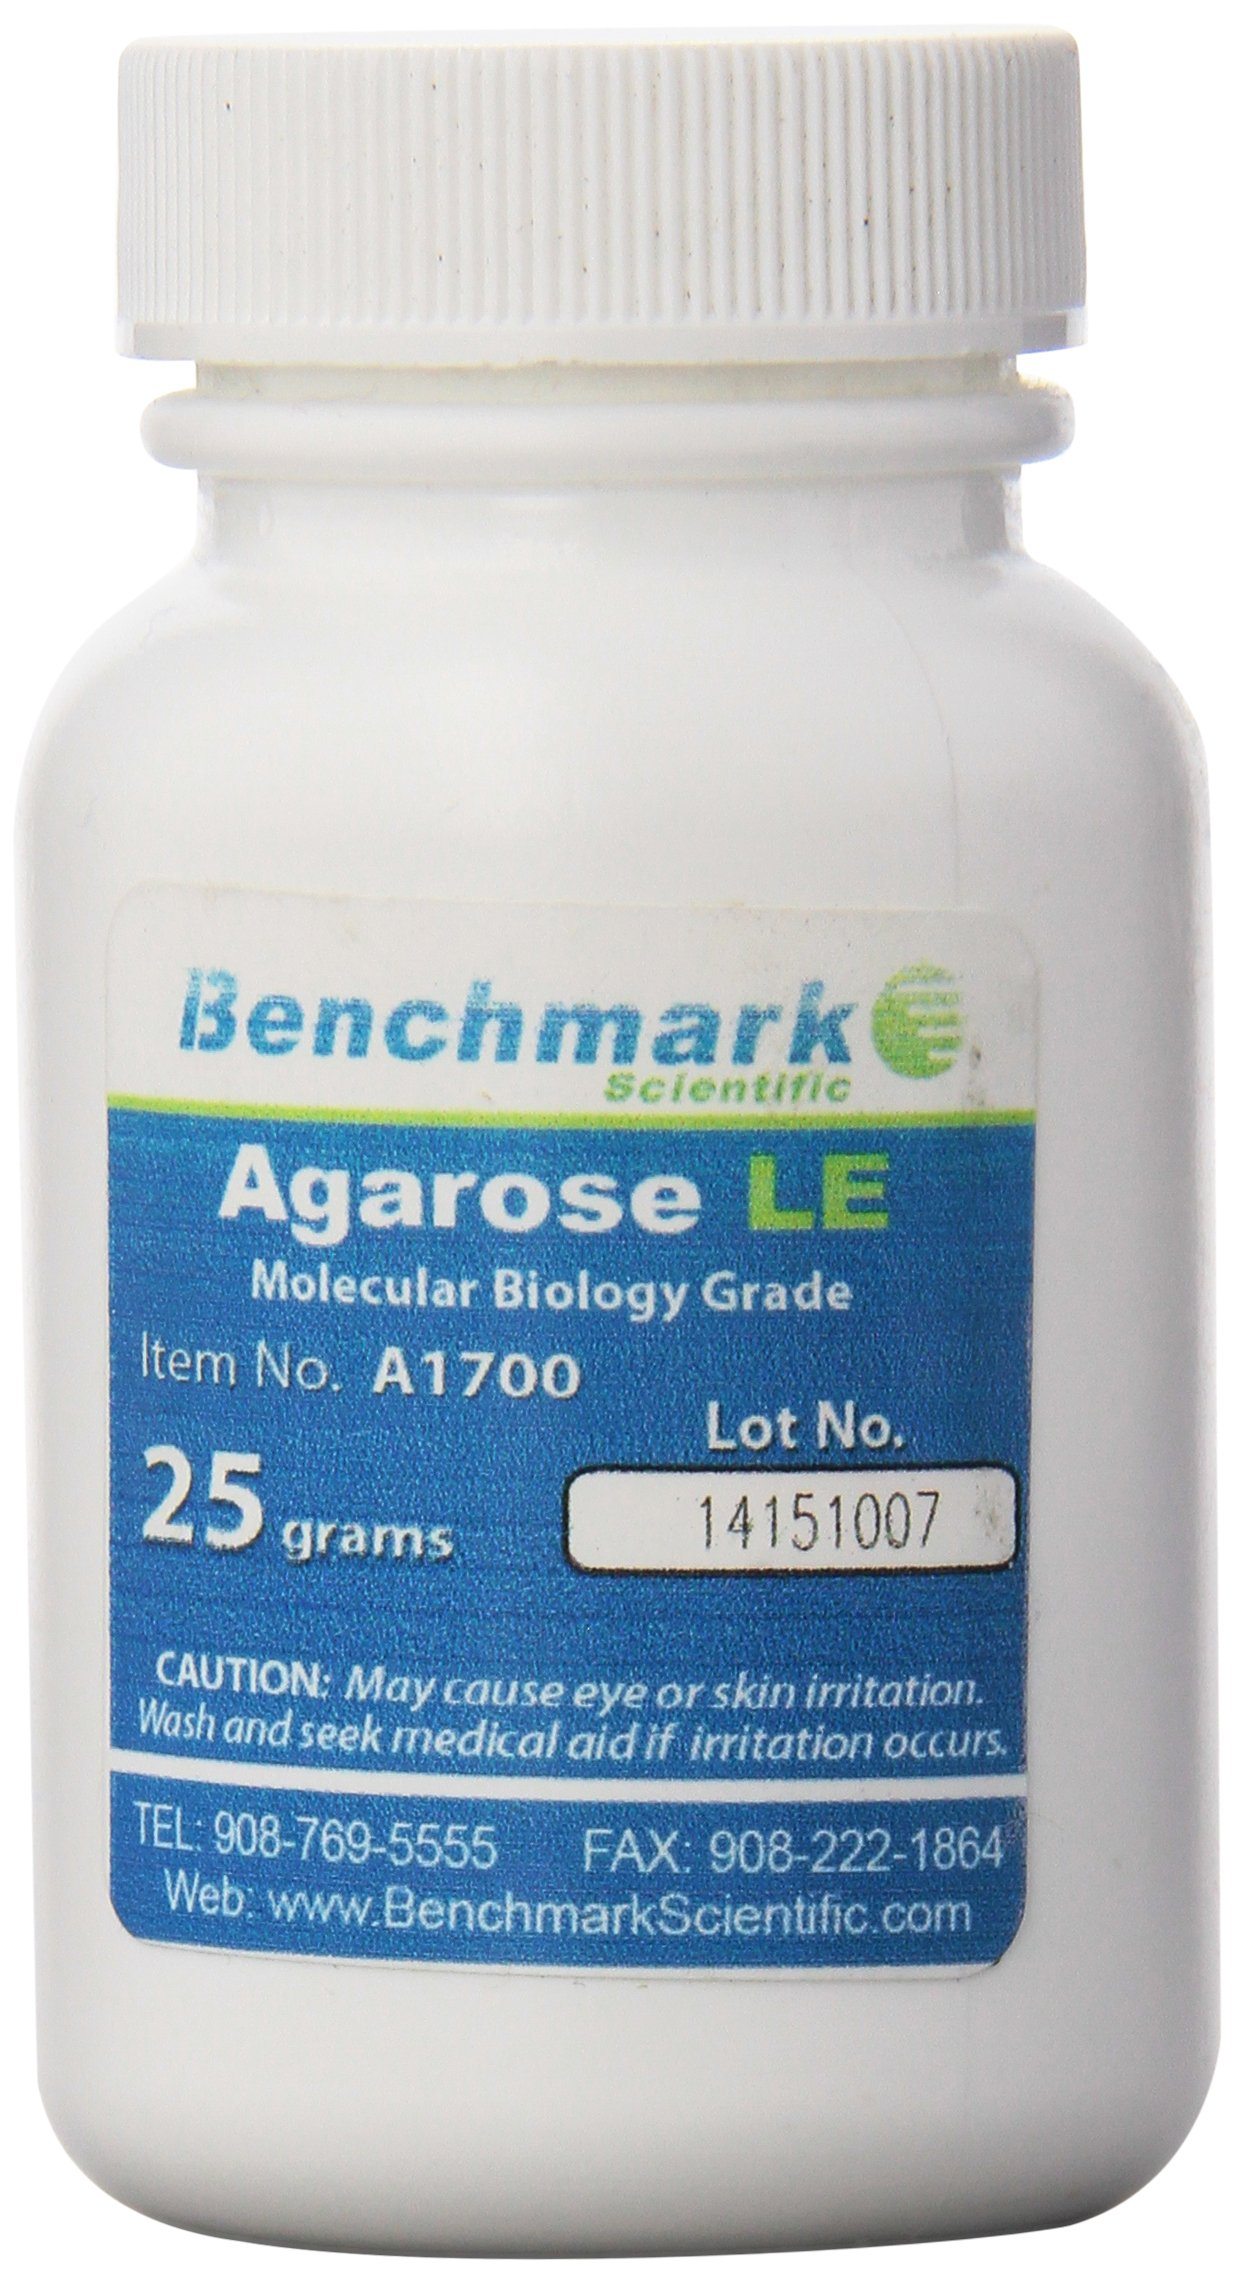 Benchmark Scientific A1700 Agarose LE Powder, Highly Purified for Molecular Biology, 25 g by Benchmark Scientific